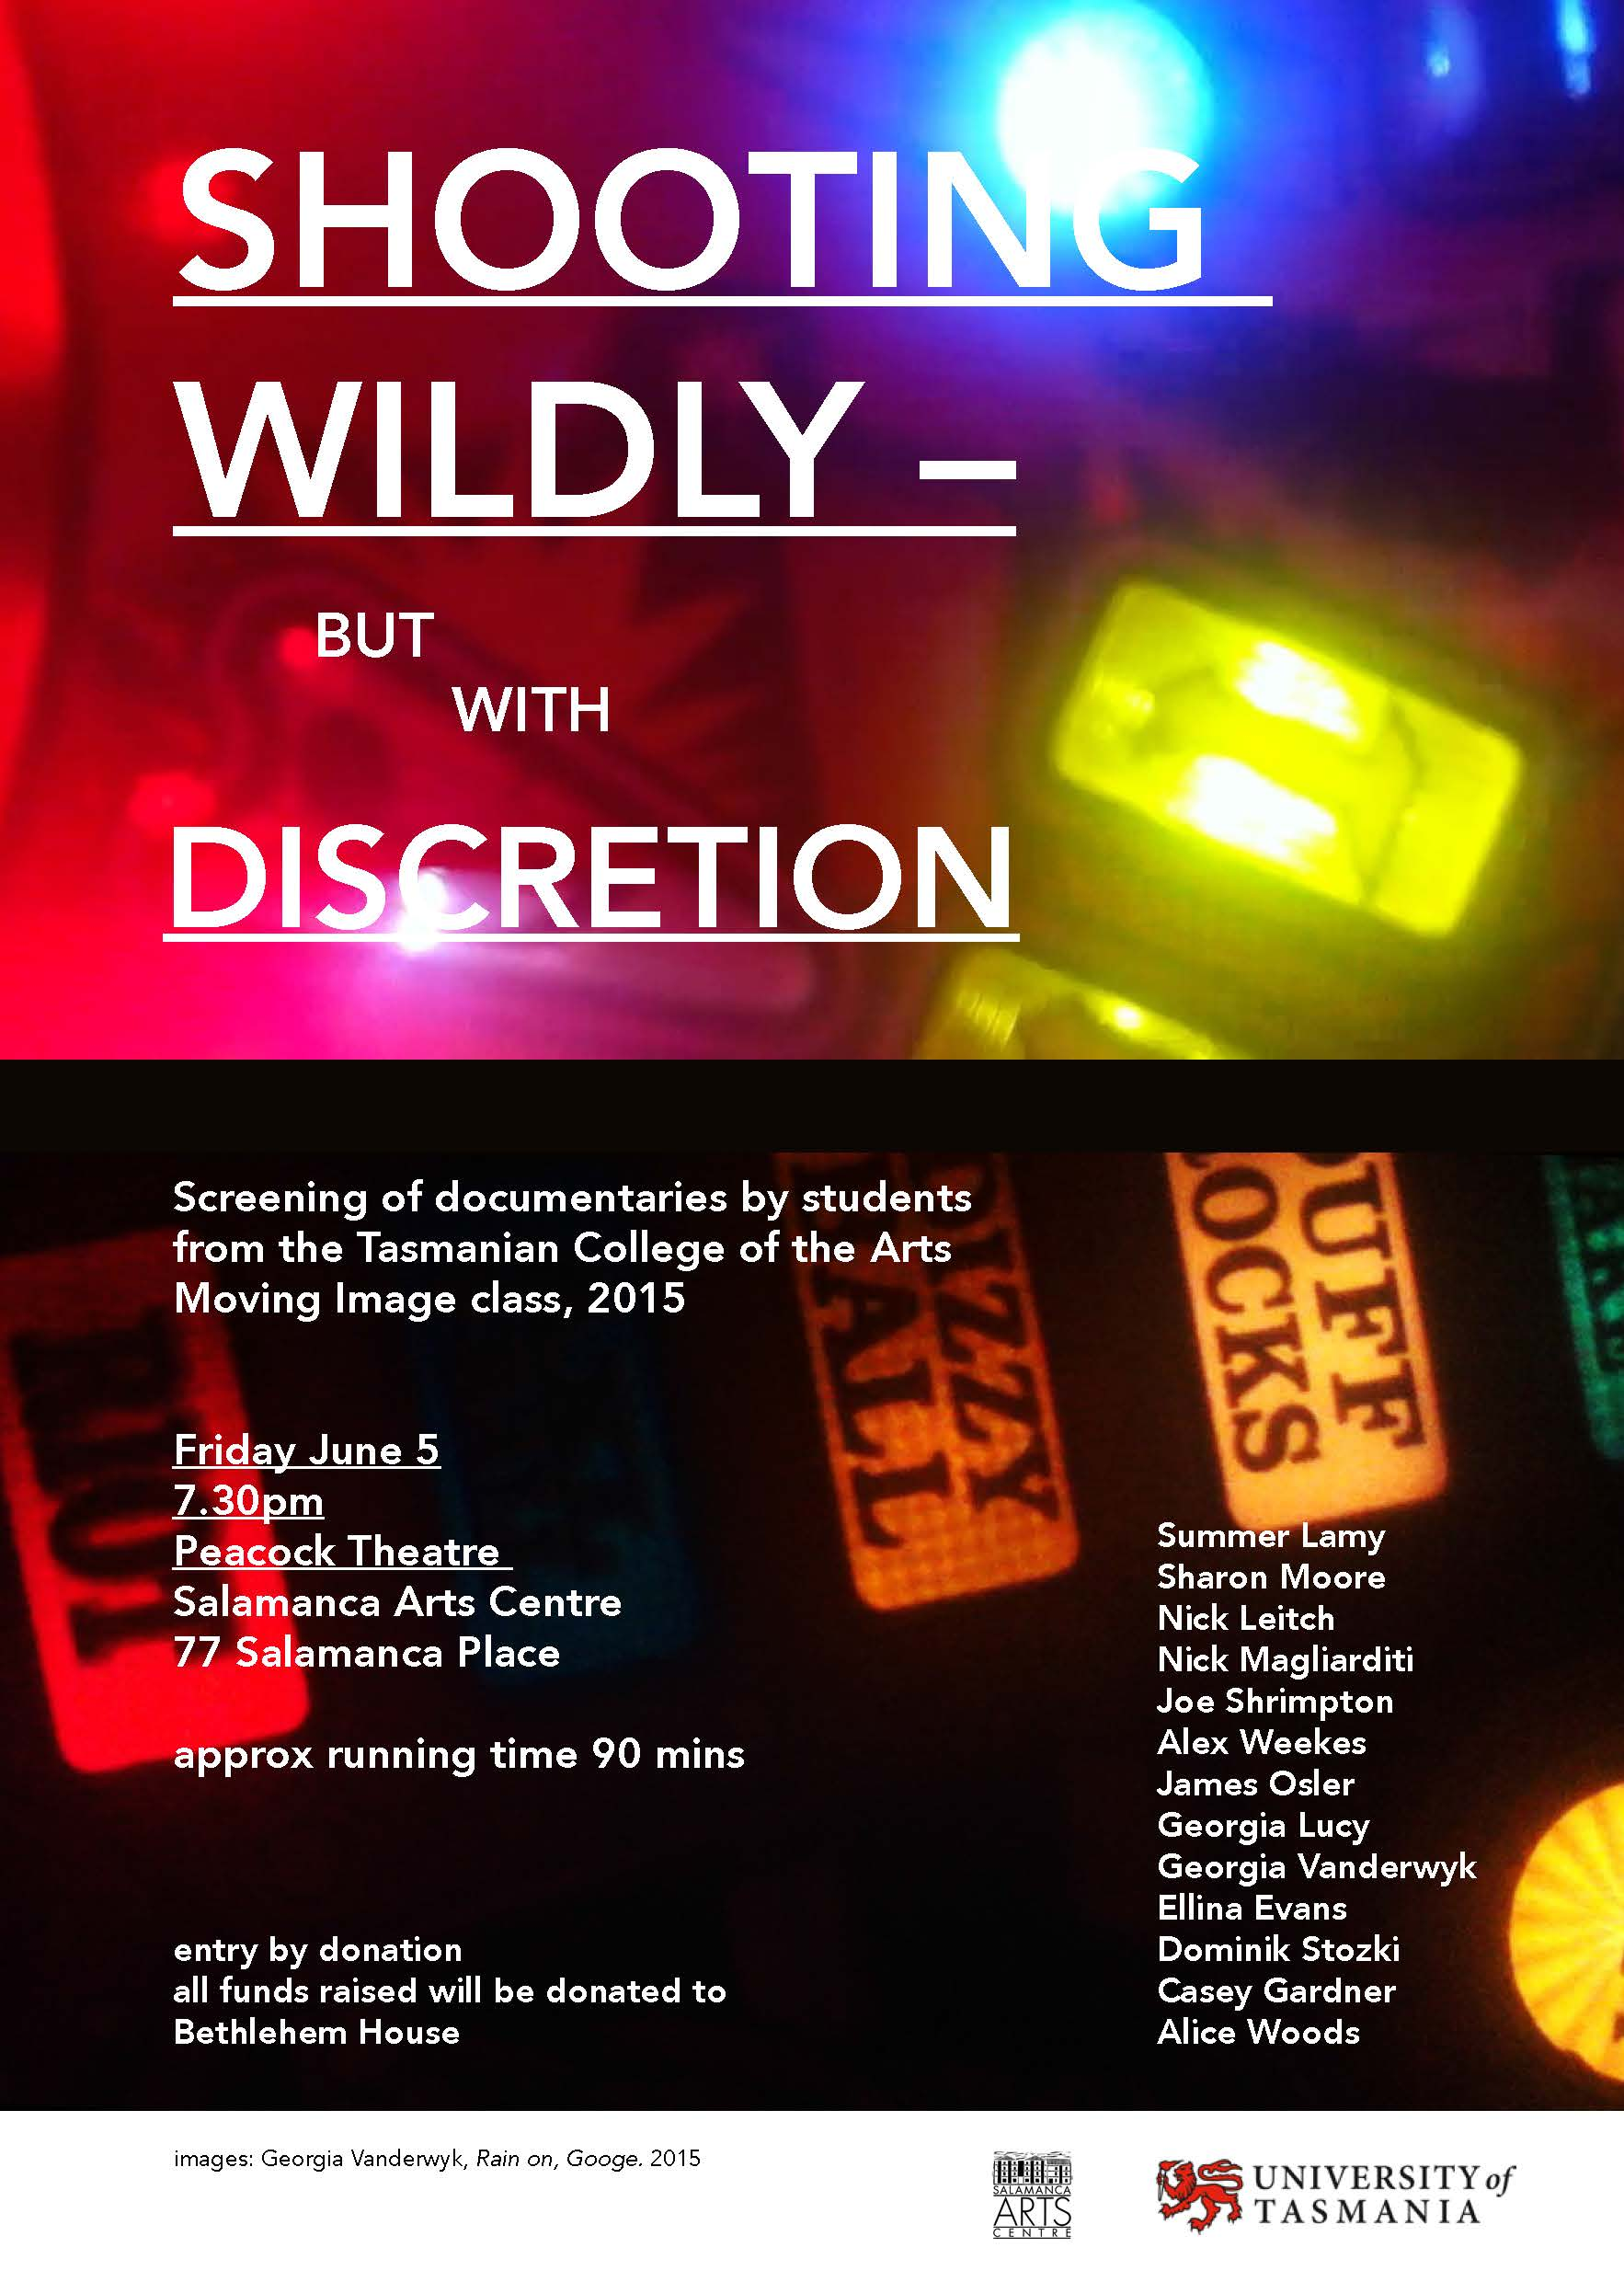 Shooting Wildy - but with Discretion Poster